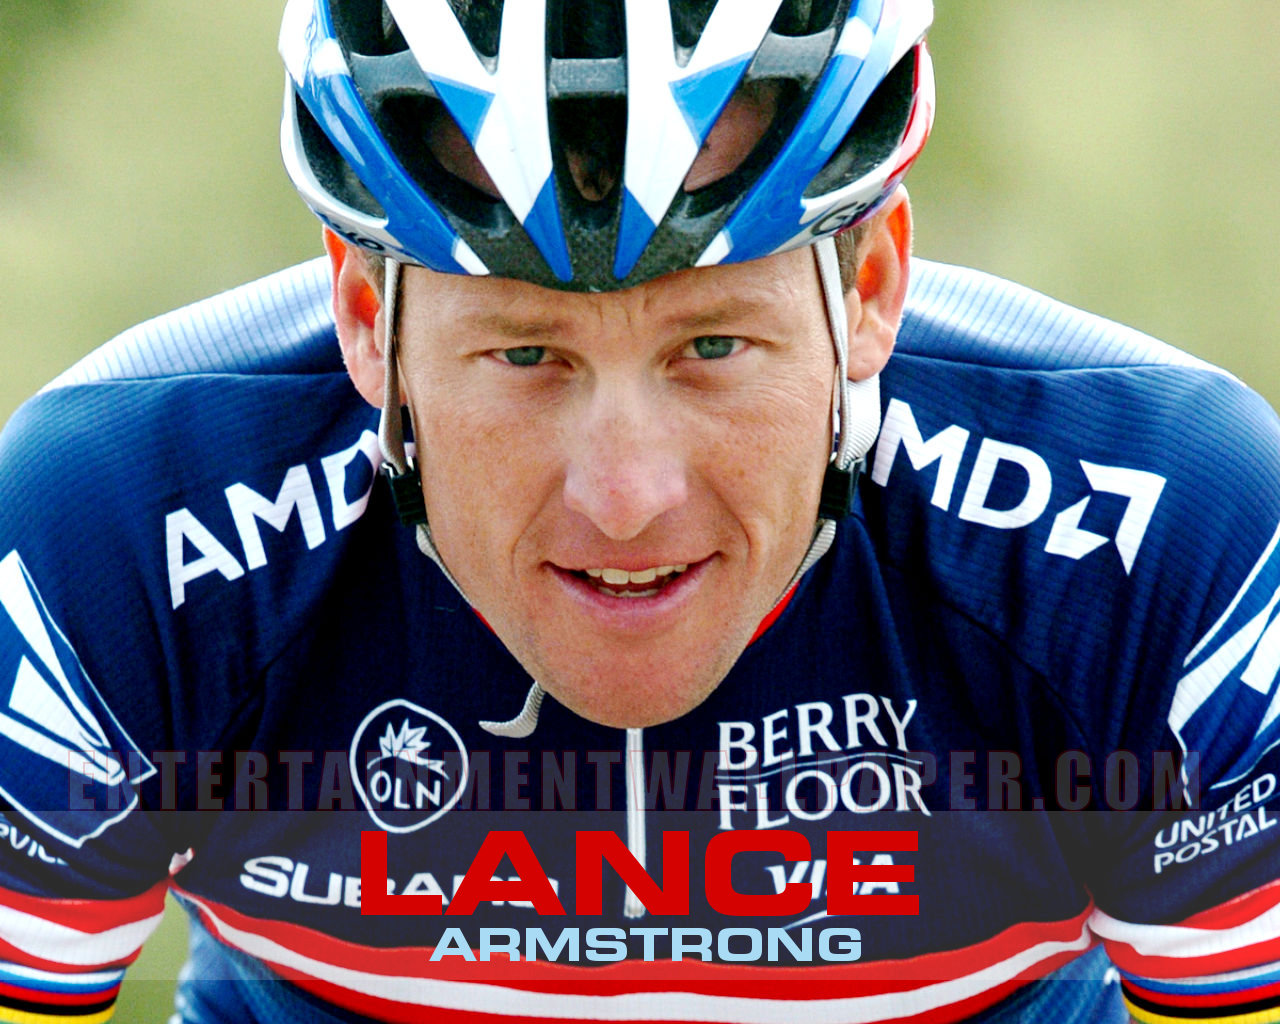 In Defense of Lance Armstrong's Detractors